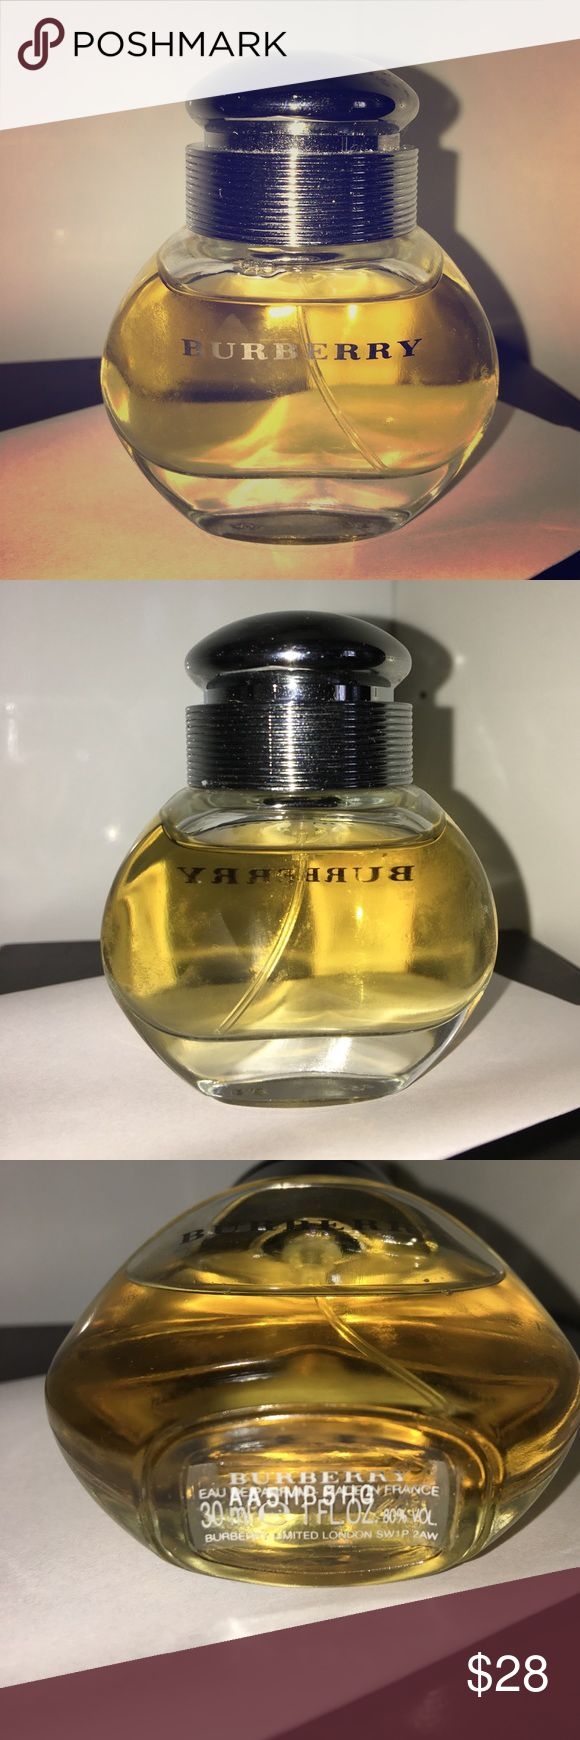 Burberry by Burberry Perfume 30 mL/1 oz. Barely used and mostly full. Bottle has some scuff marks and general wear. Price is negotiable 😊 Burberry Makeup